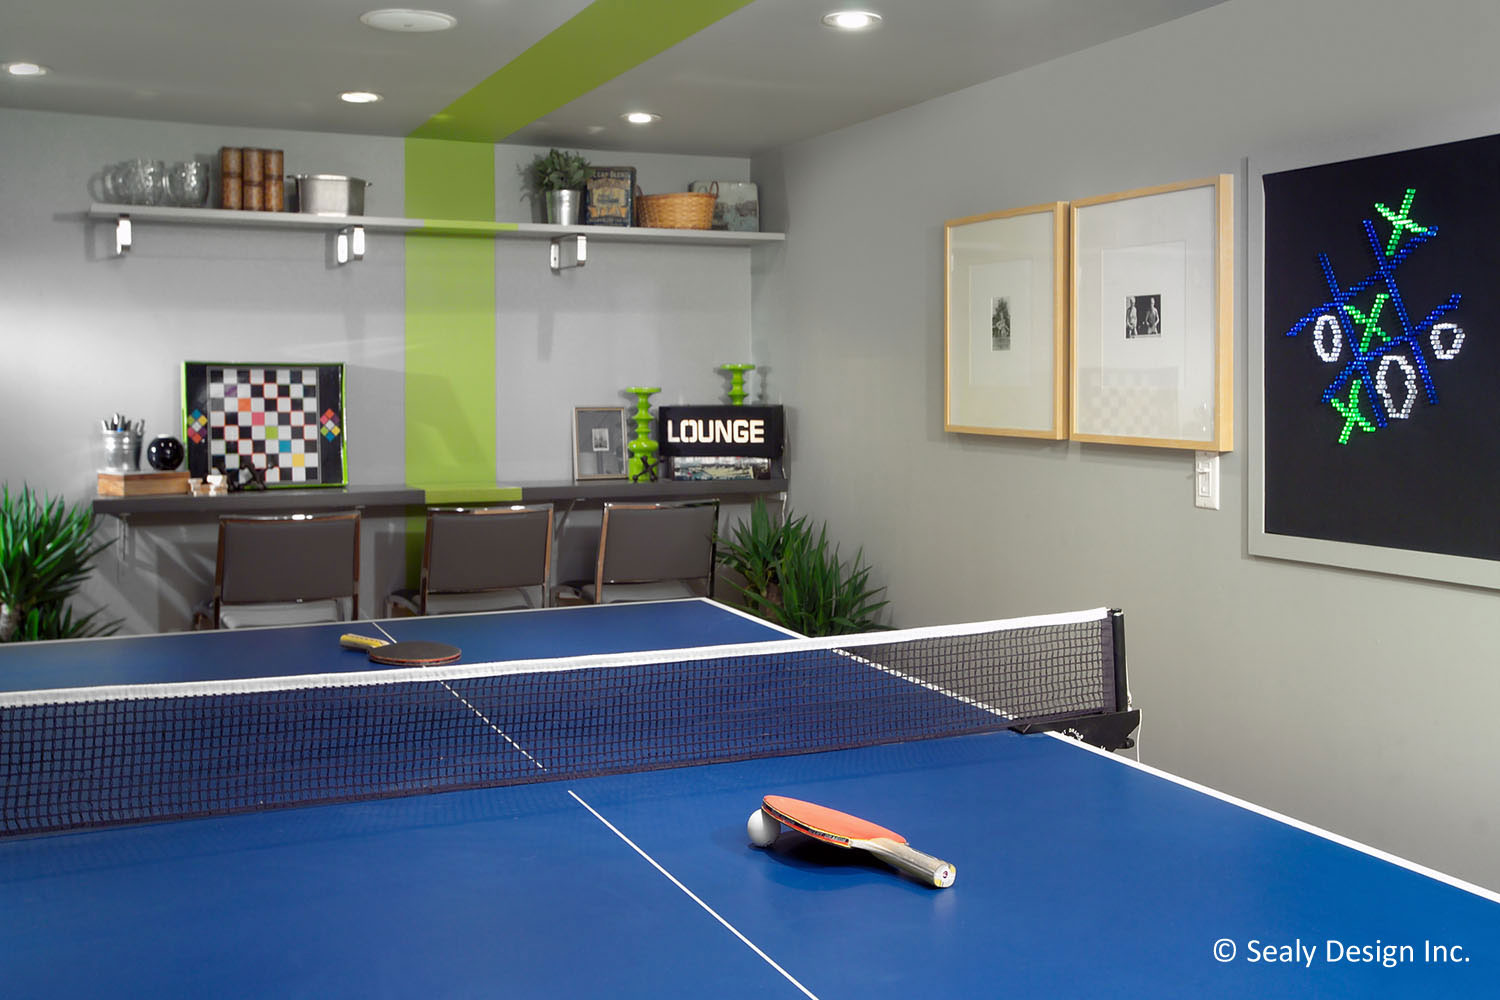 Photos sealy design inc for Basement game room design